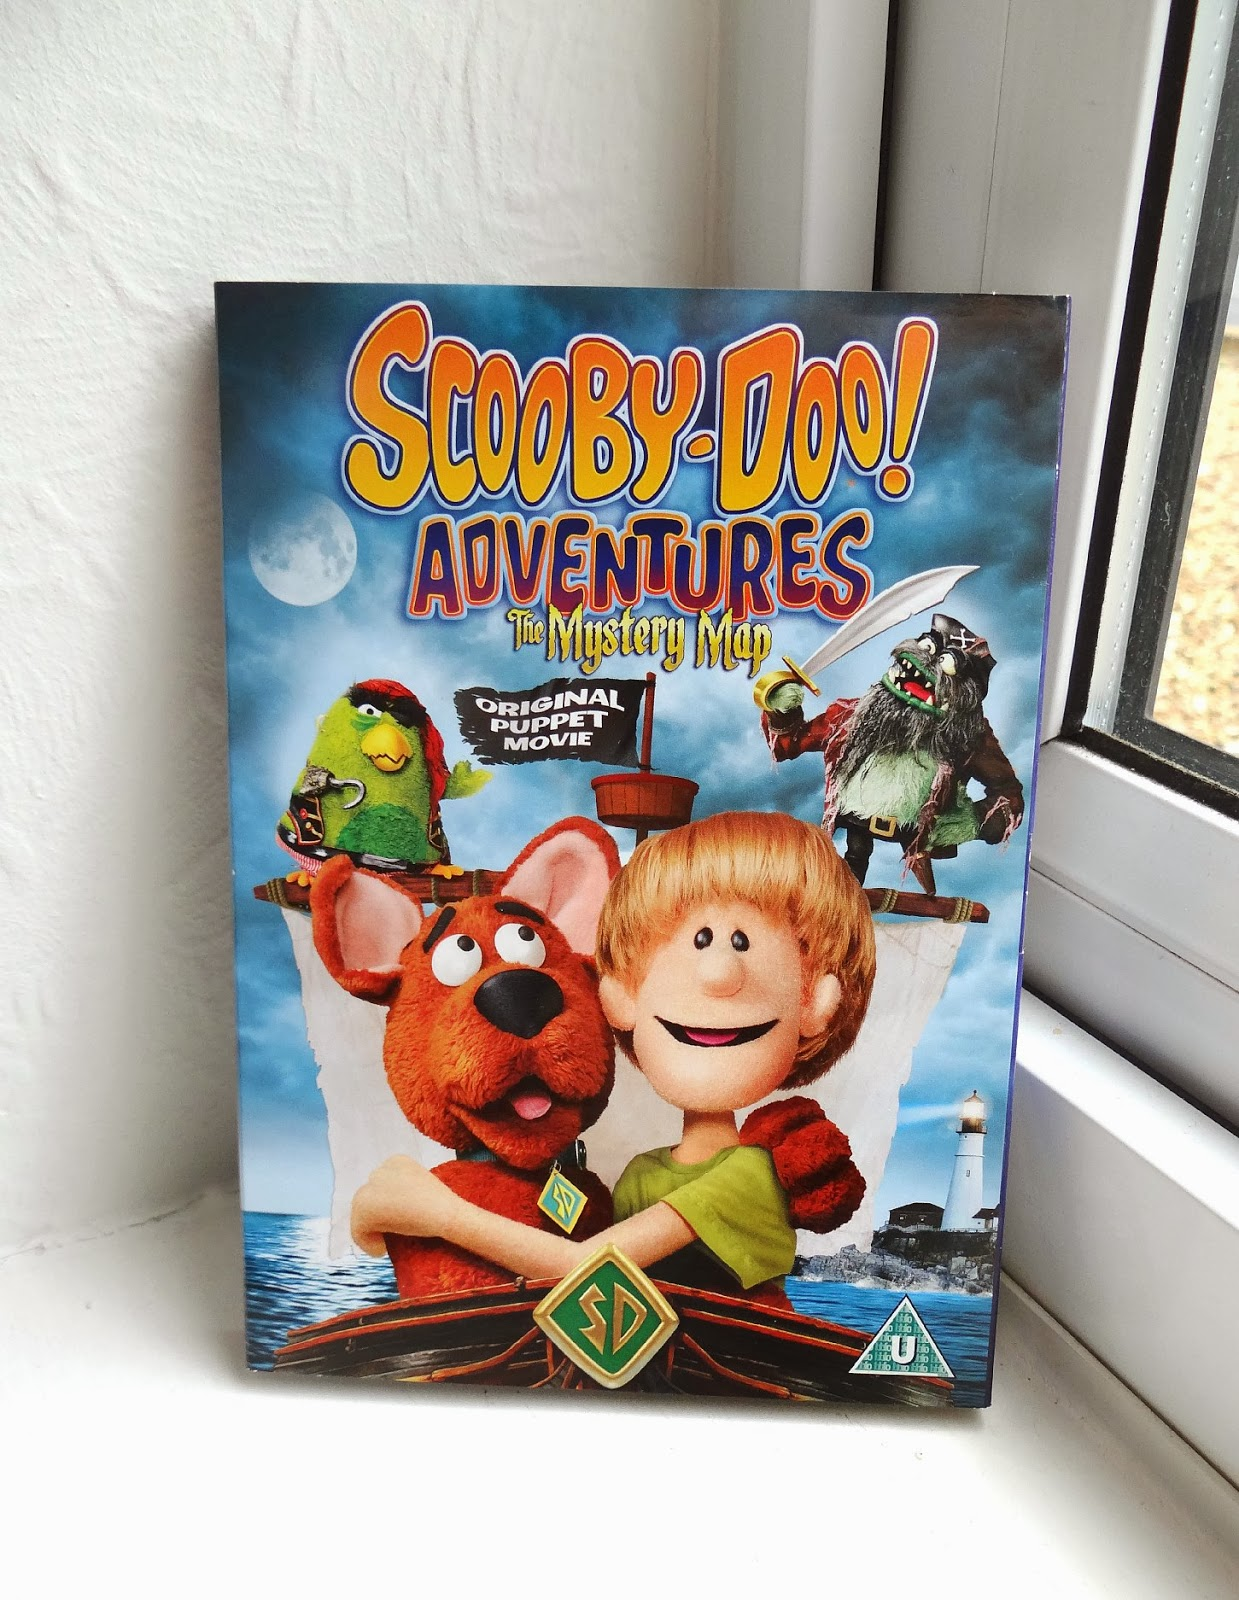 scoobydoo adventures  the mystery map dvd. scoobydoo adventures  the mystery map dvd  this is life